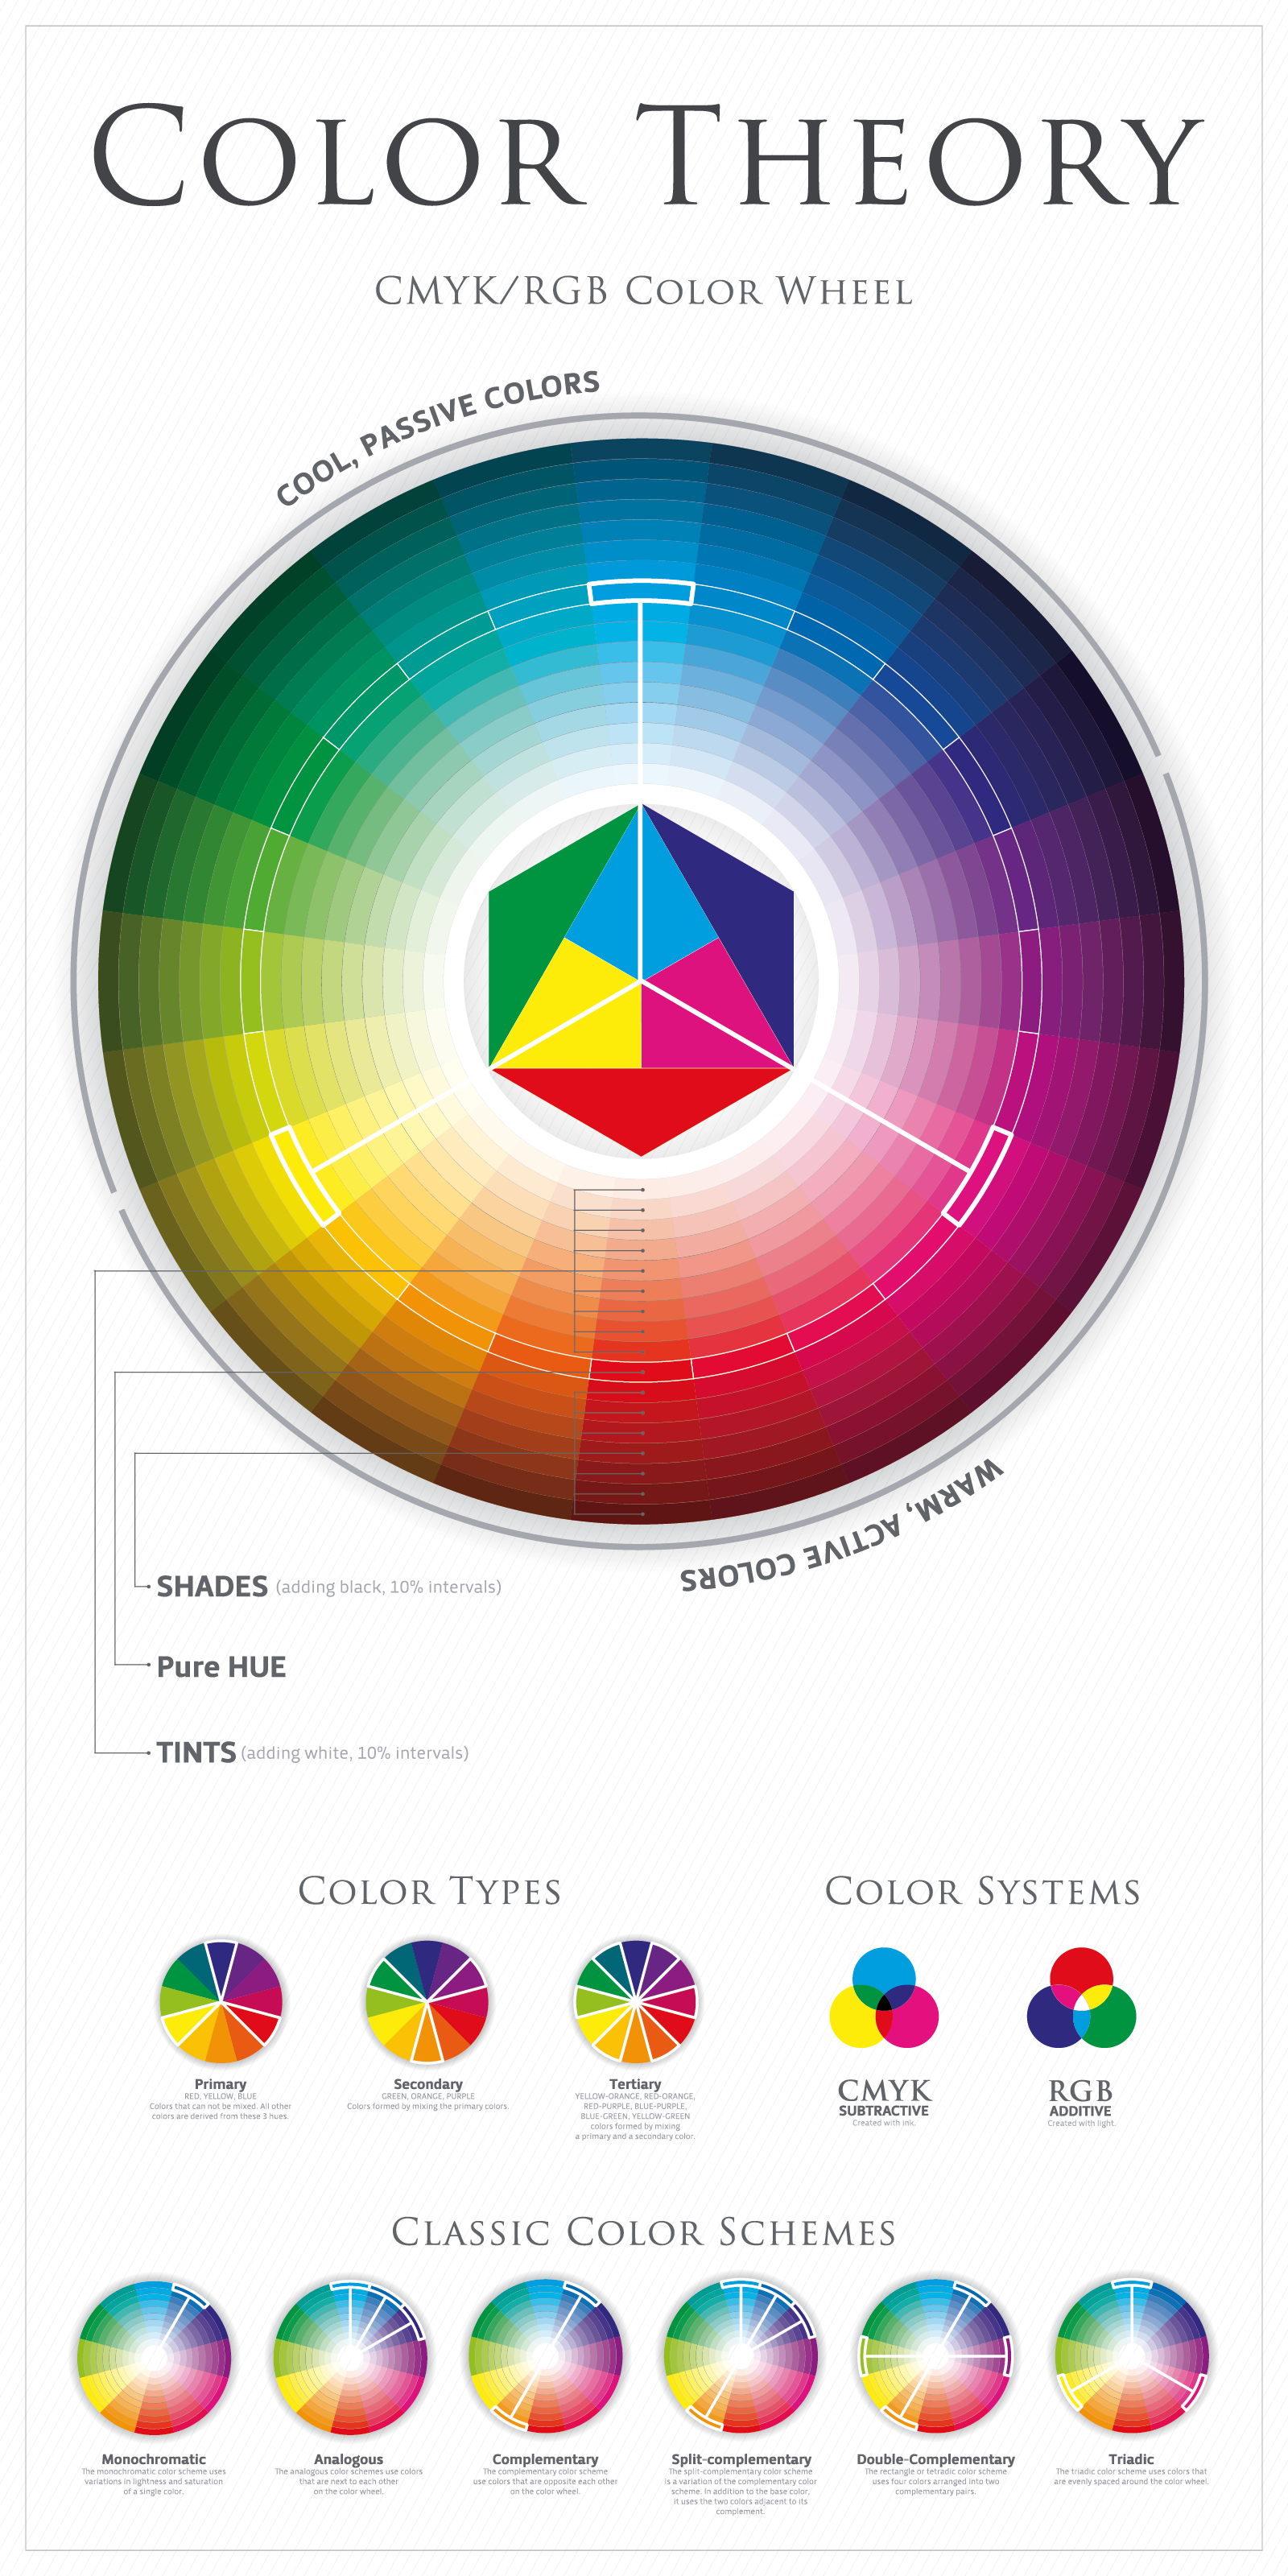 Color theory infographic explaining the color wheel, types, systems and classic color schemes